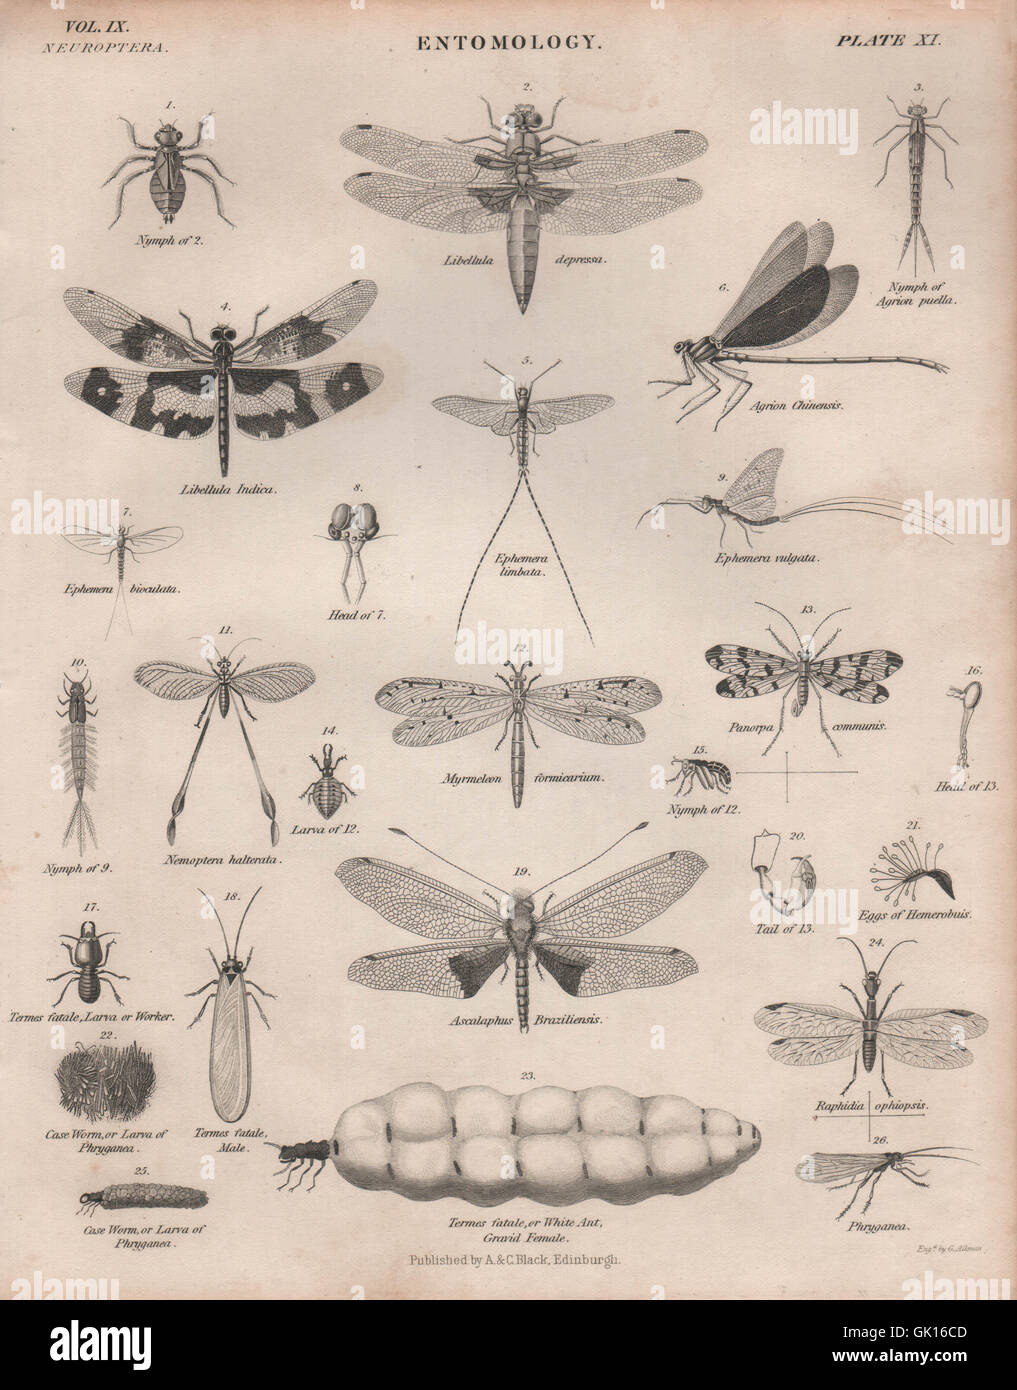 ENTOMOLOGY 11. Insects dragonflies dragonfly. BRITANNICA, antique print 1860 - Stock Image